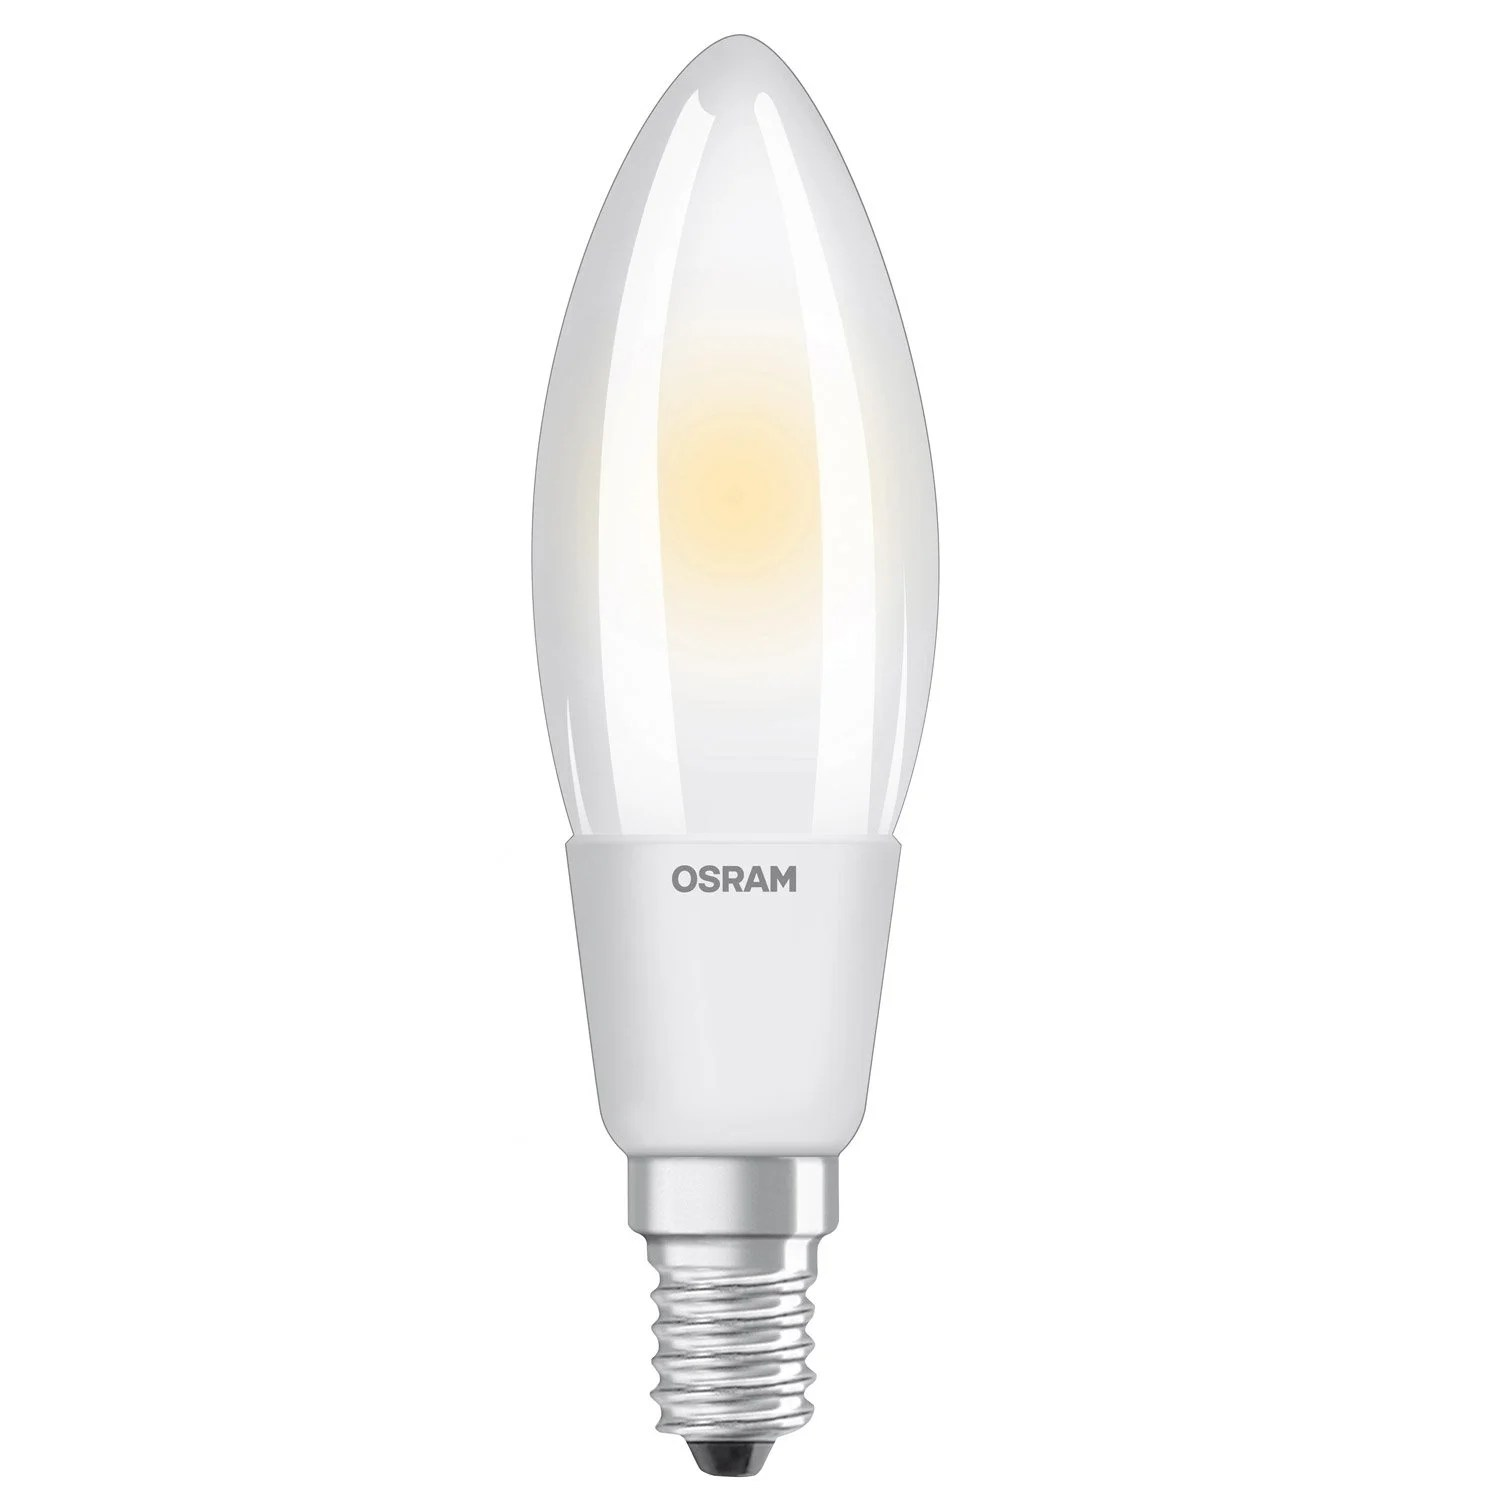 Ampoule Led Dimmable Led Bulb E27 Flame Dimmable 5w 470lm Equiv 40w 2700k 300 Osram